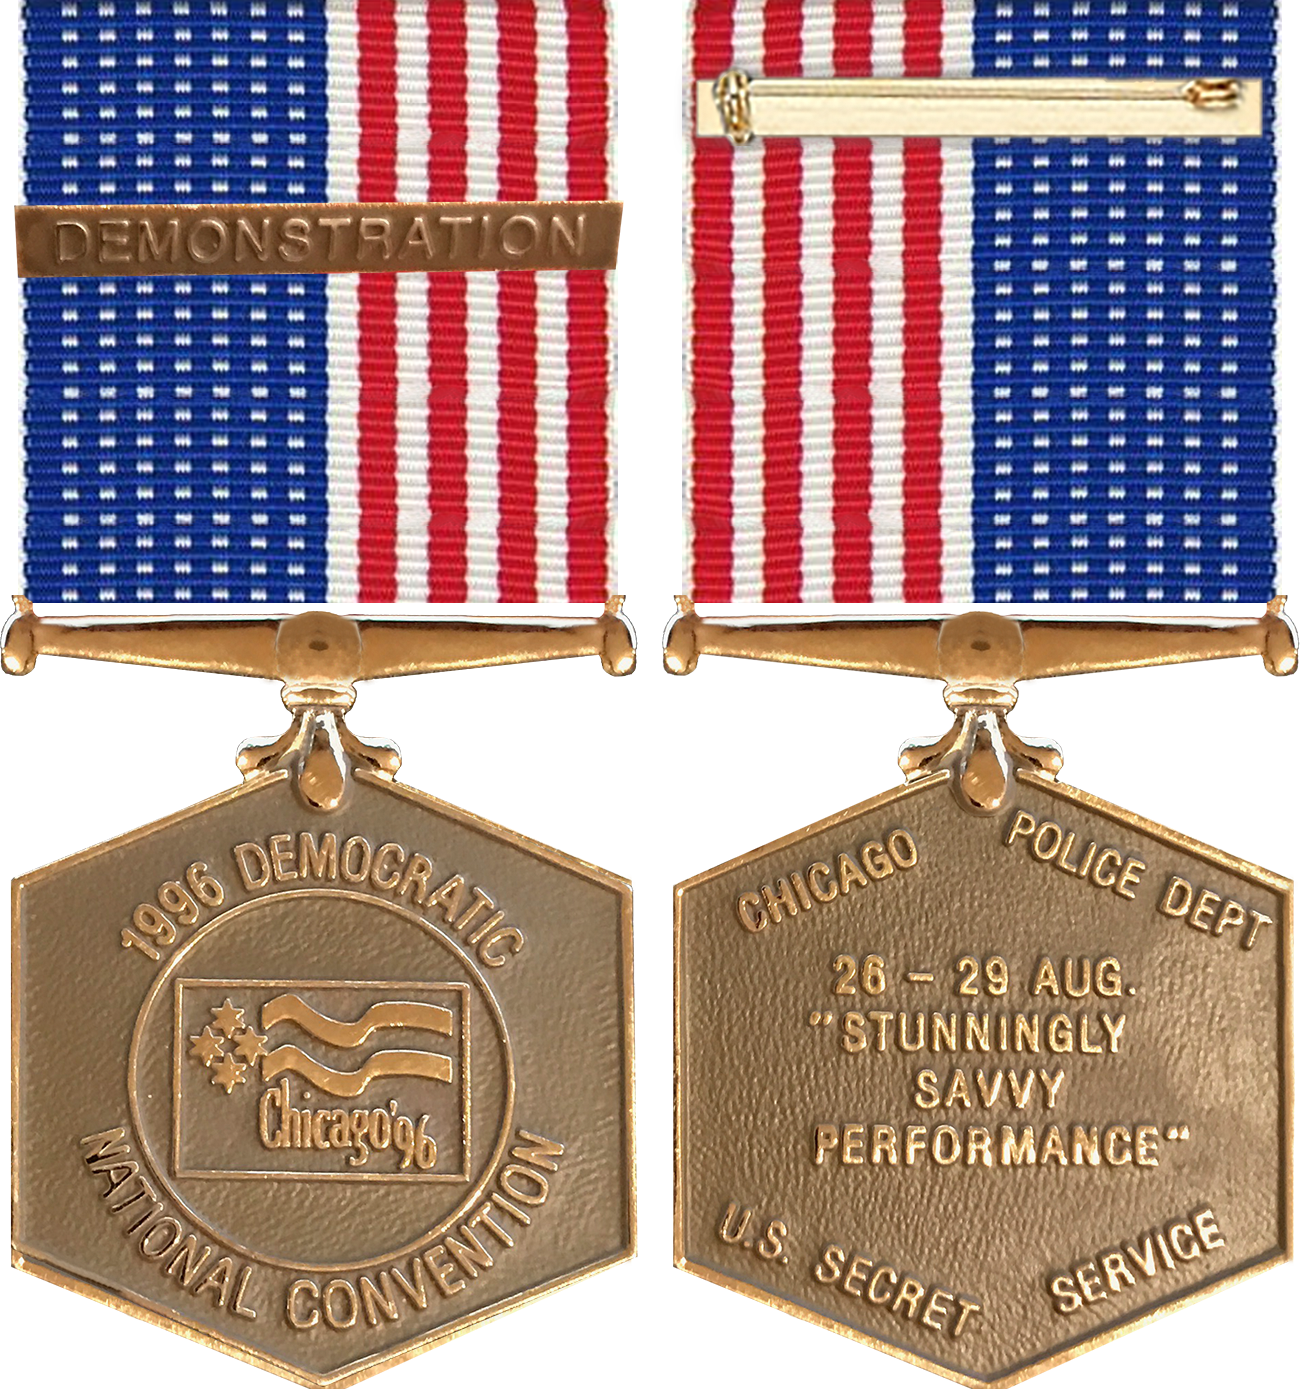 Democratic Convention Service Award Medal